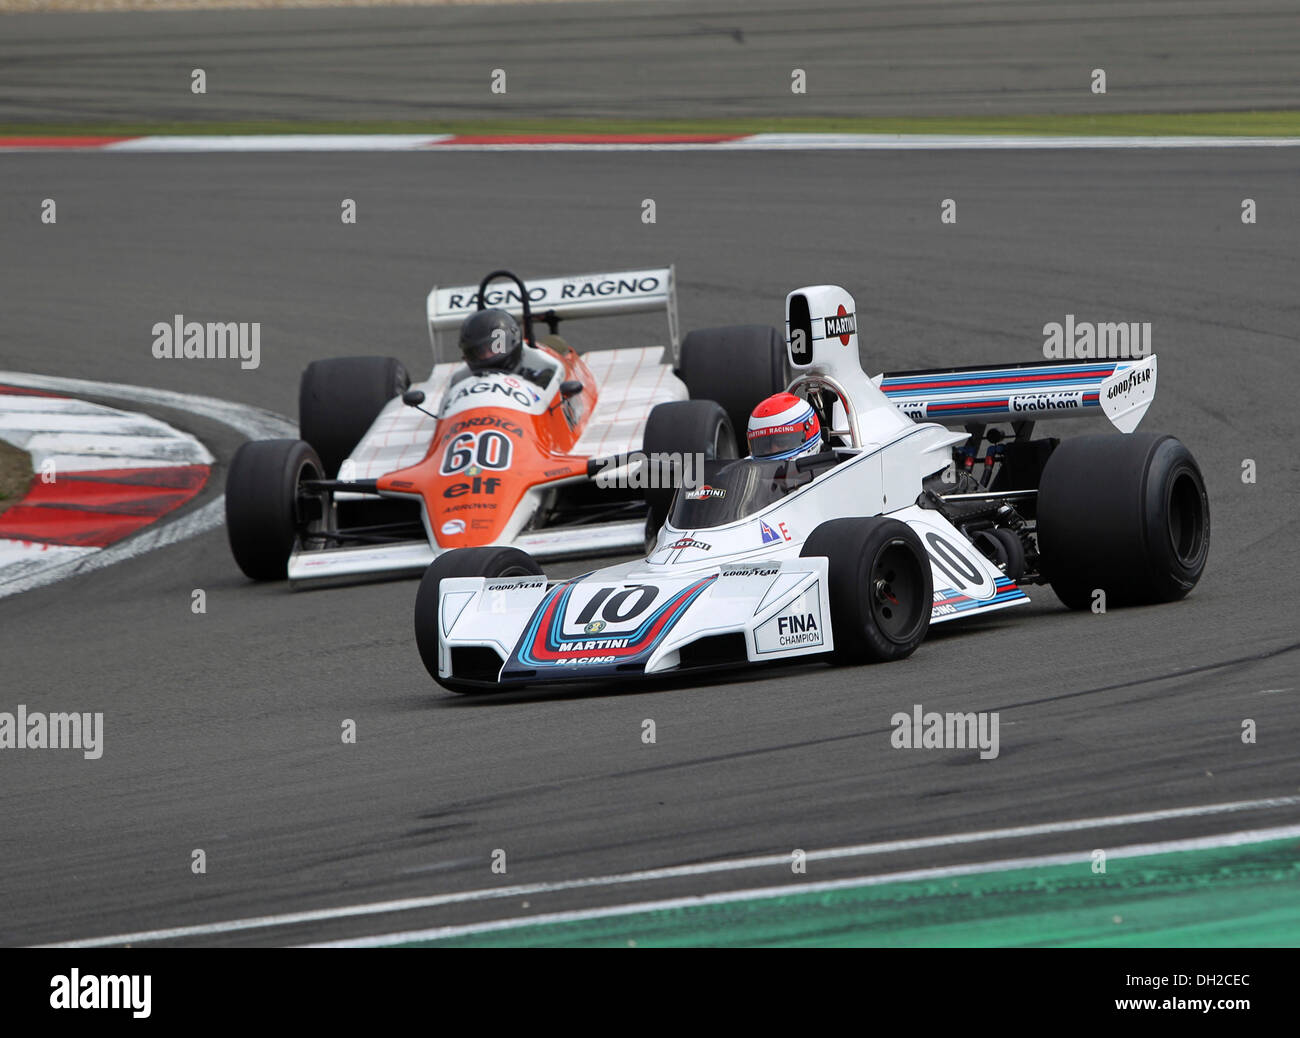 Old Brabham f1 car racing at Brands Hatch Stock Photo: 28435465 ...